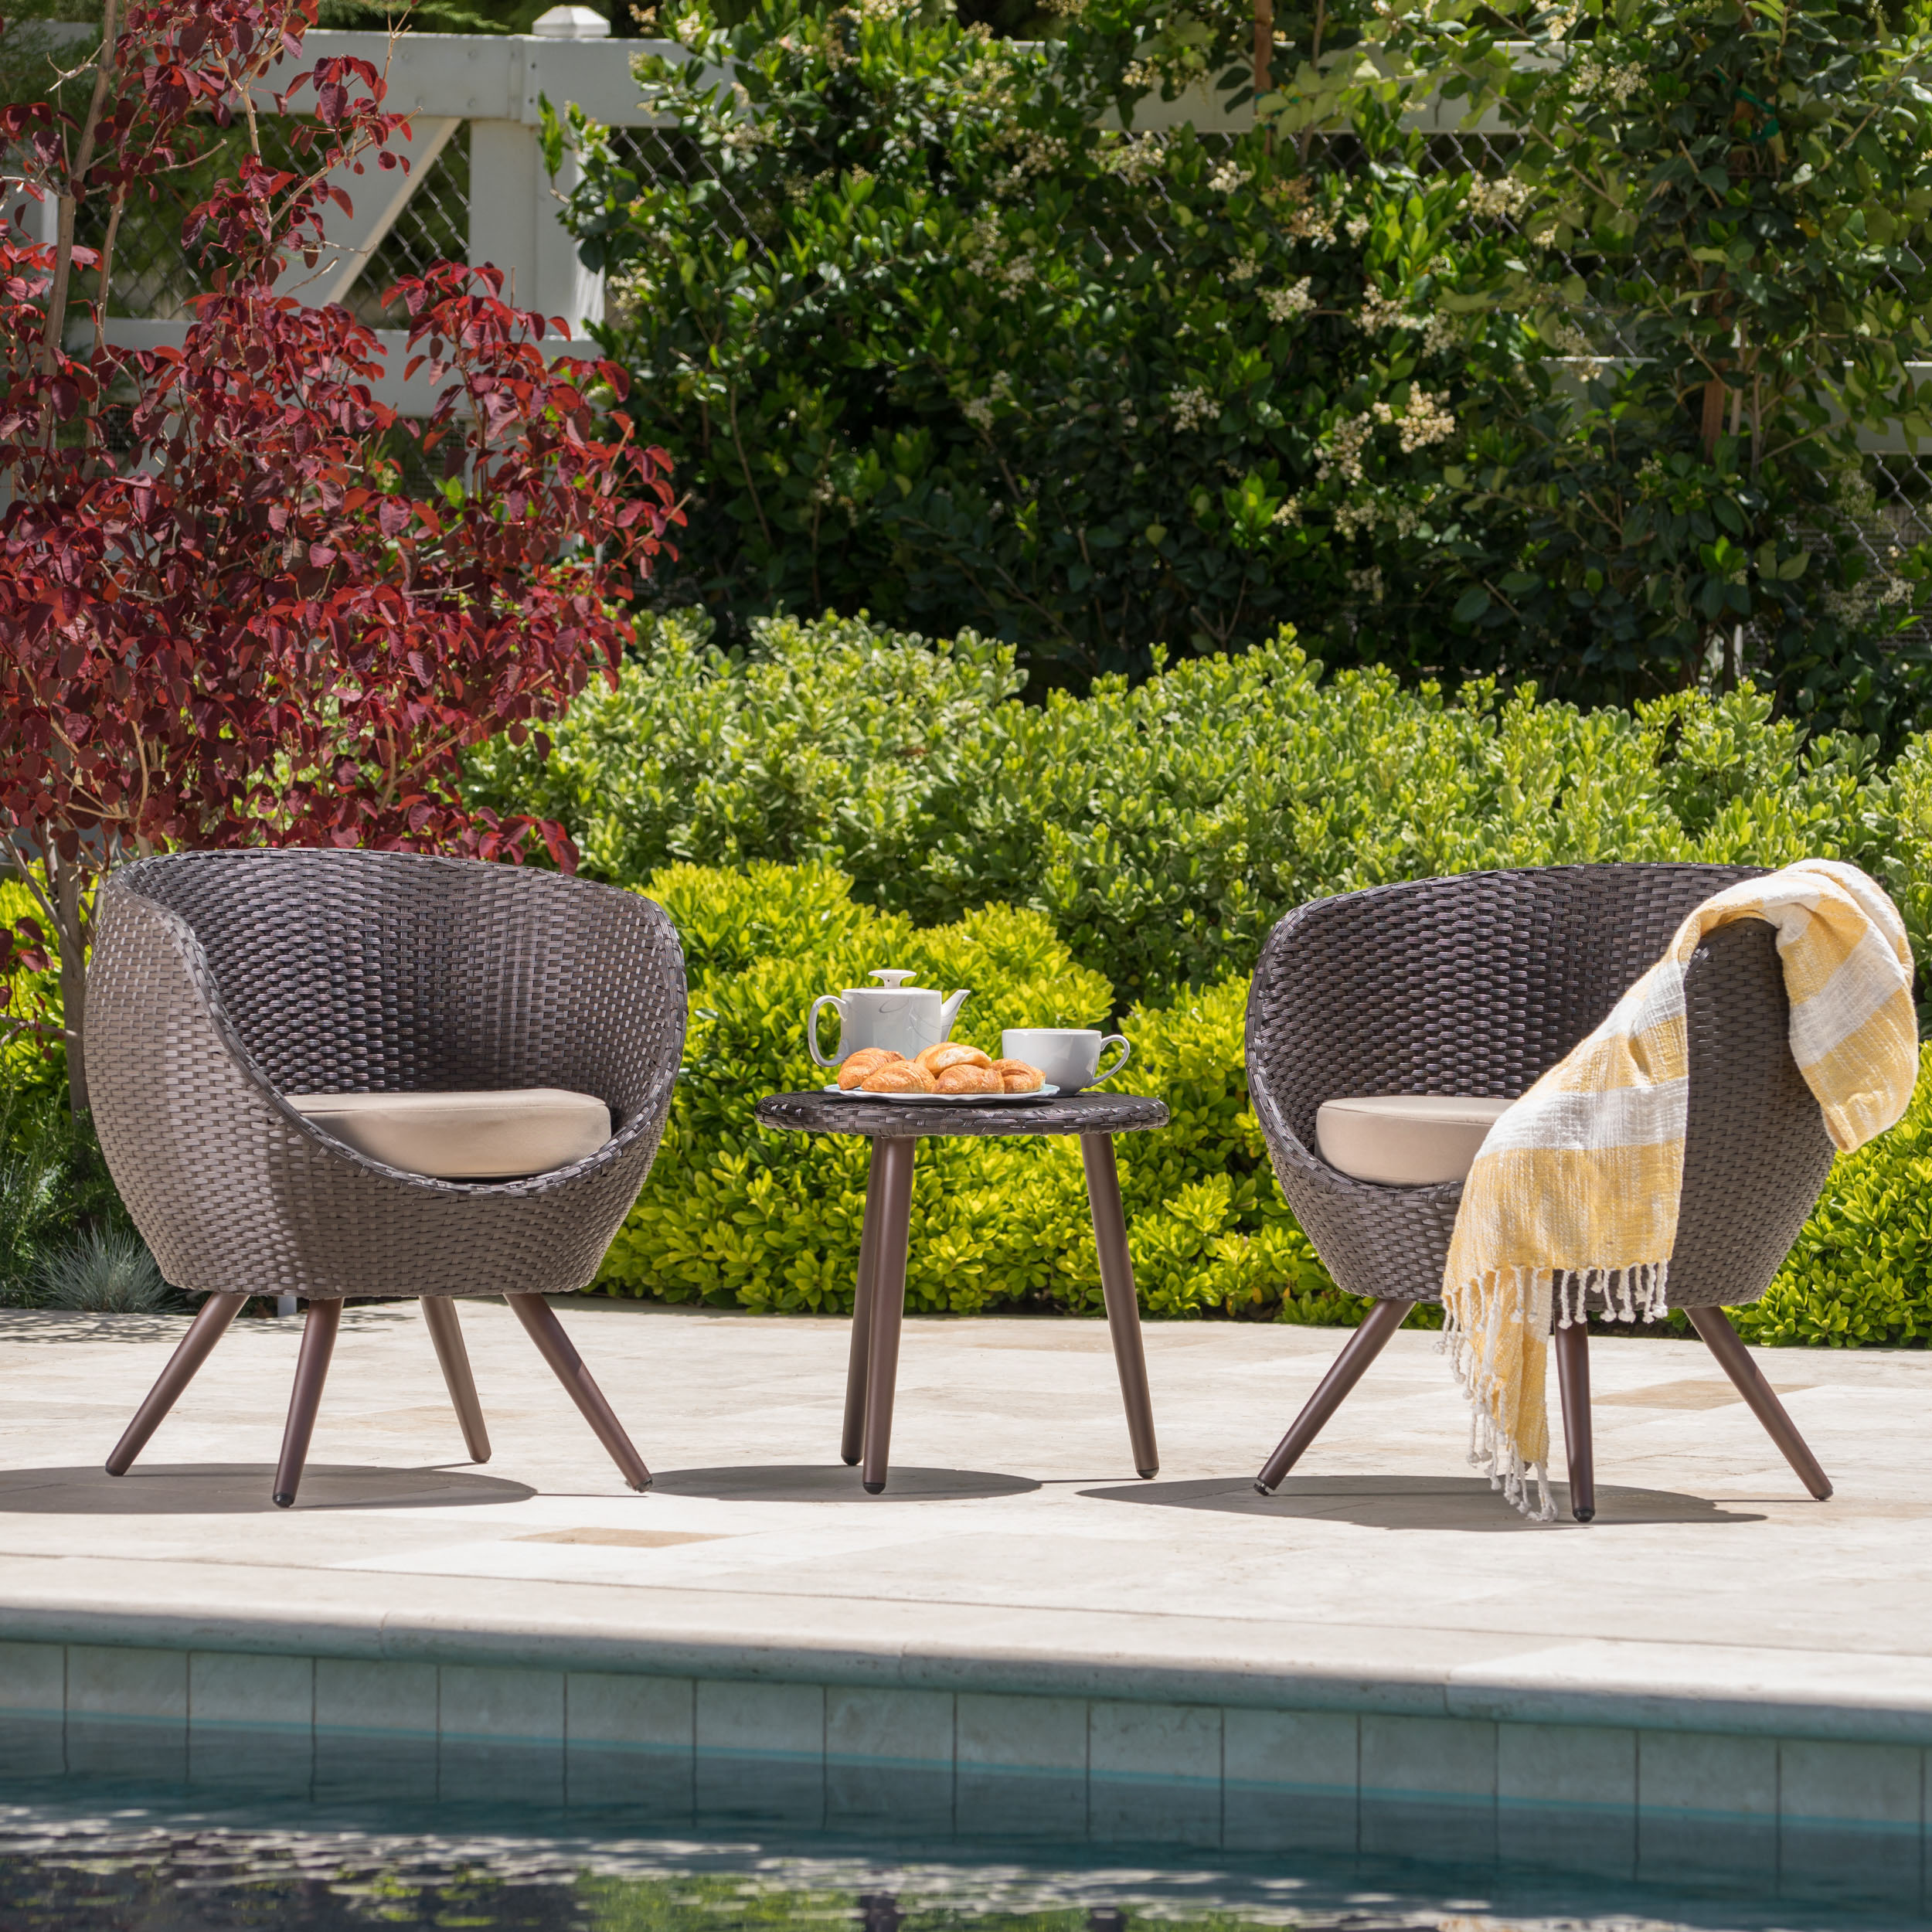 Cambria Outdoor 3 Piece Wicker Chat Set with Cushions, Multibrown, Light Brown